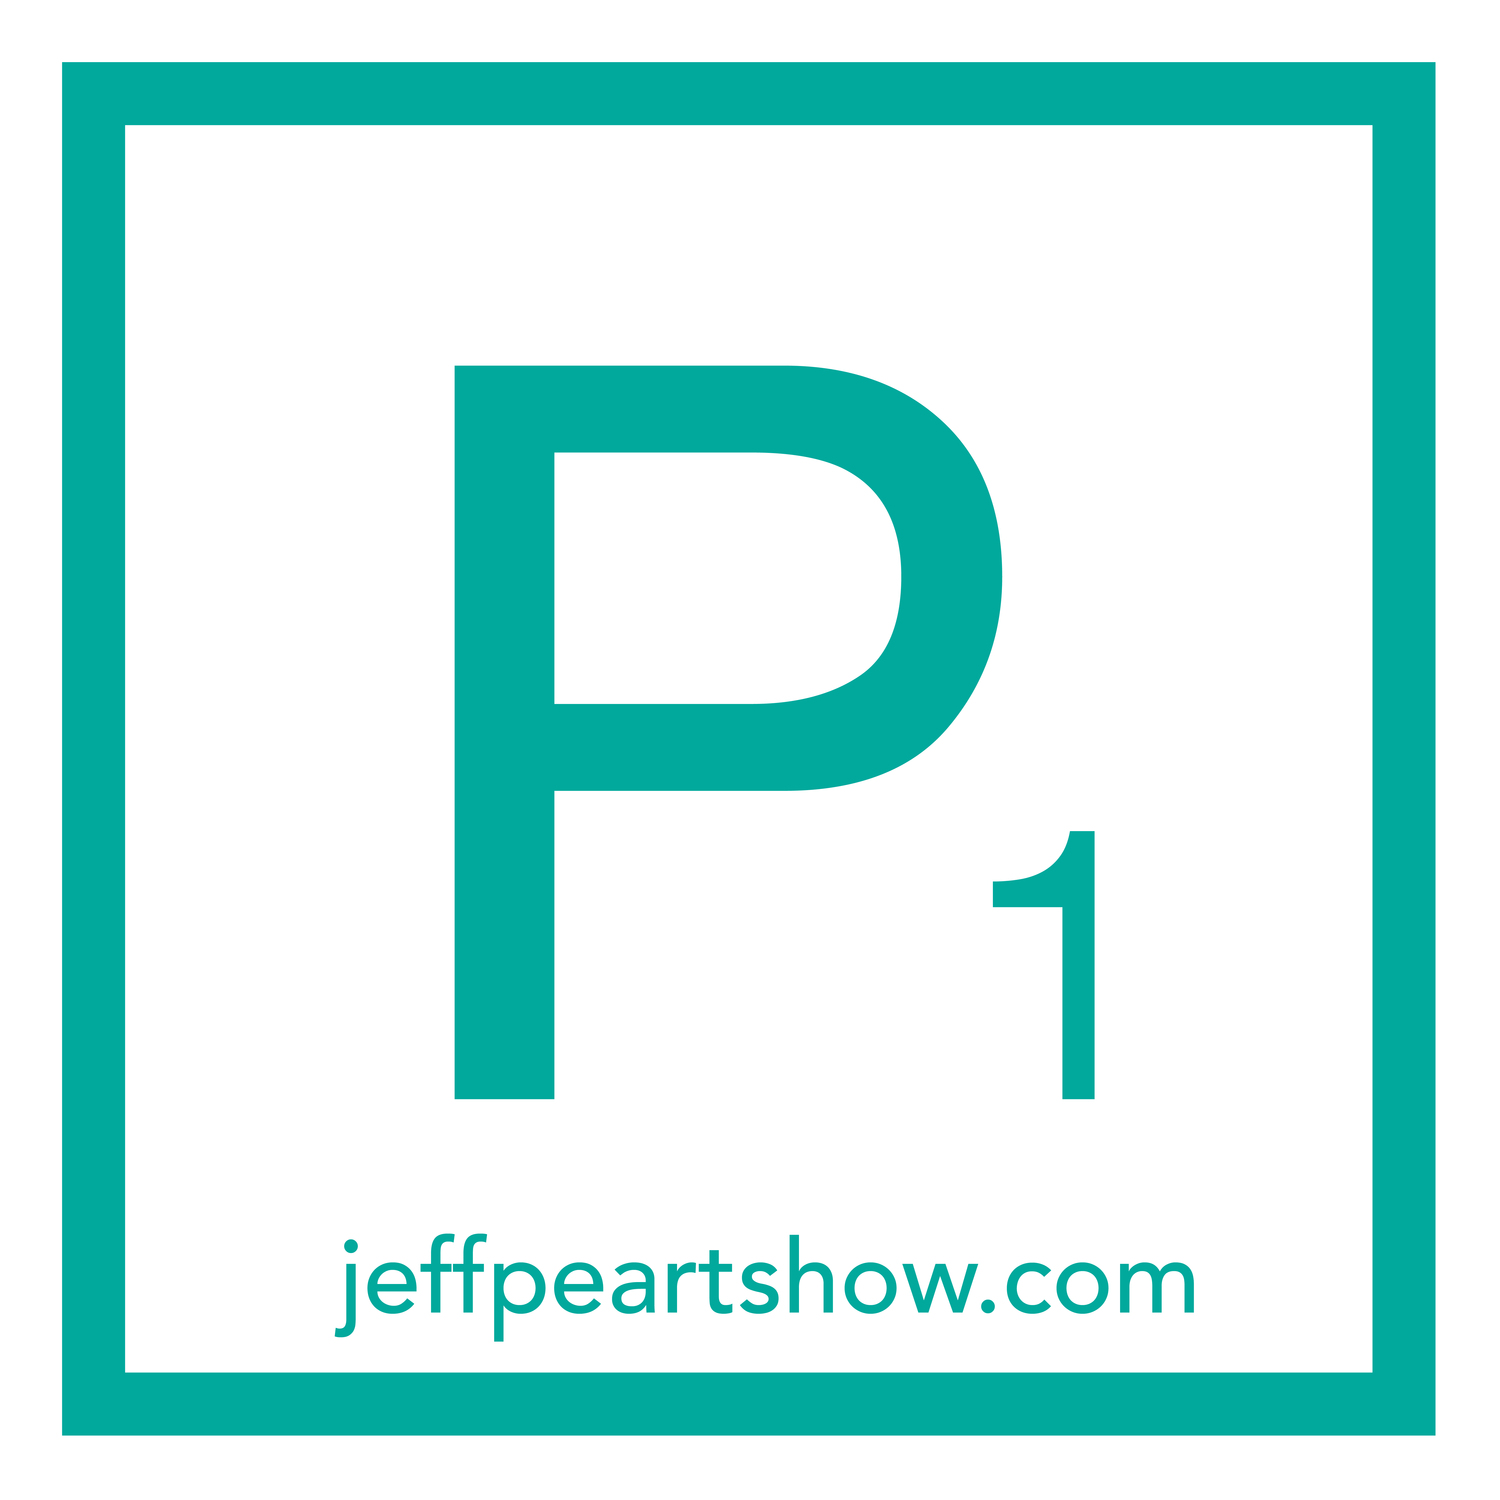 THE JEFF PEART SHOW